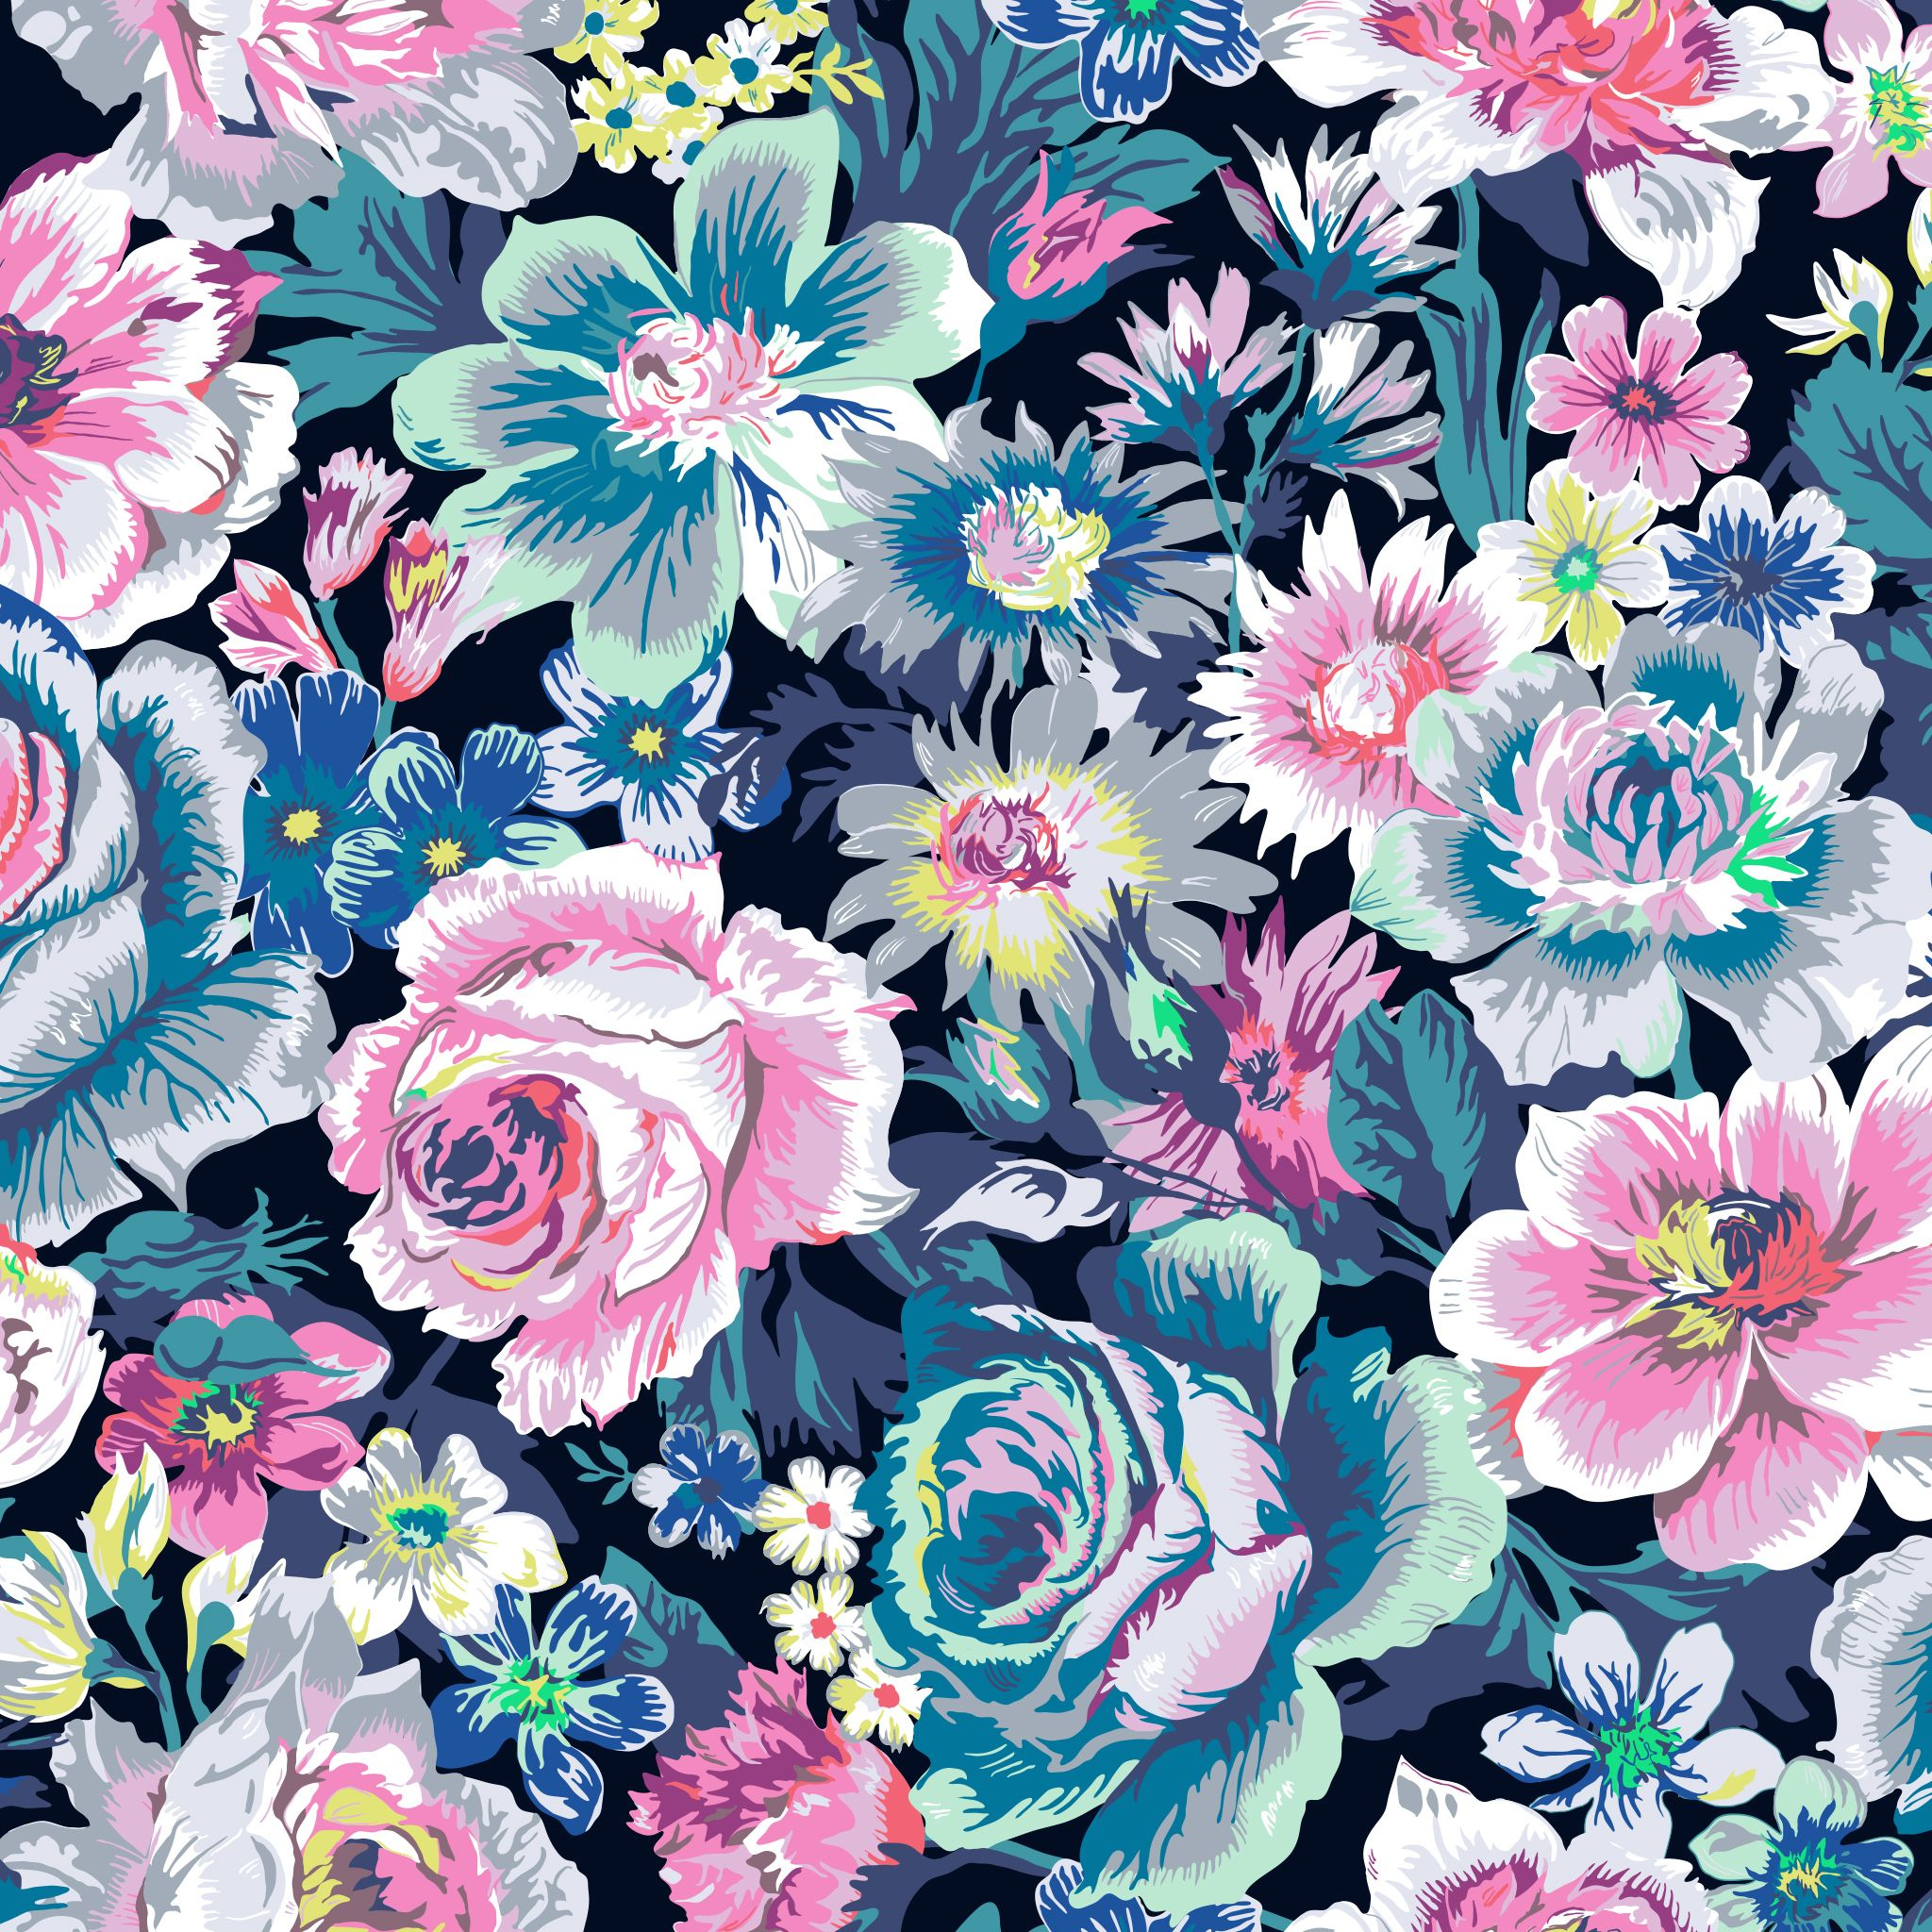 Pin by Vera Bradley on Tech Wallpapers in 2020 Wallpaper